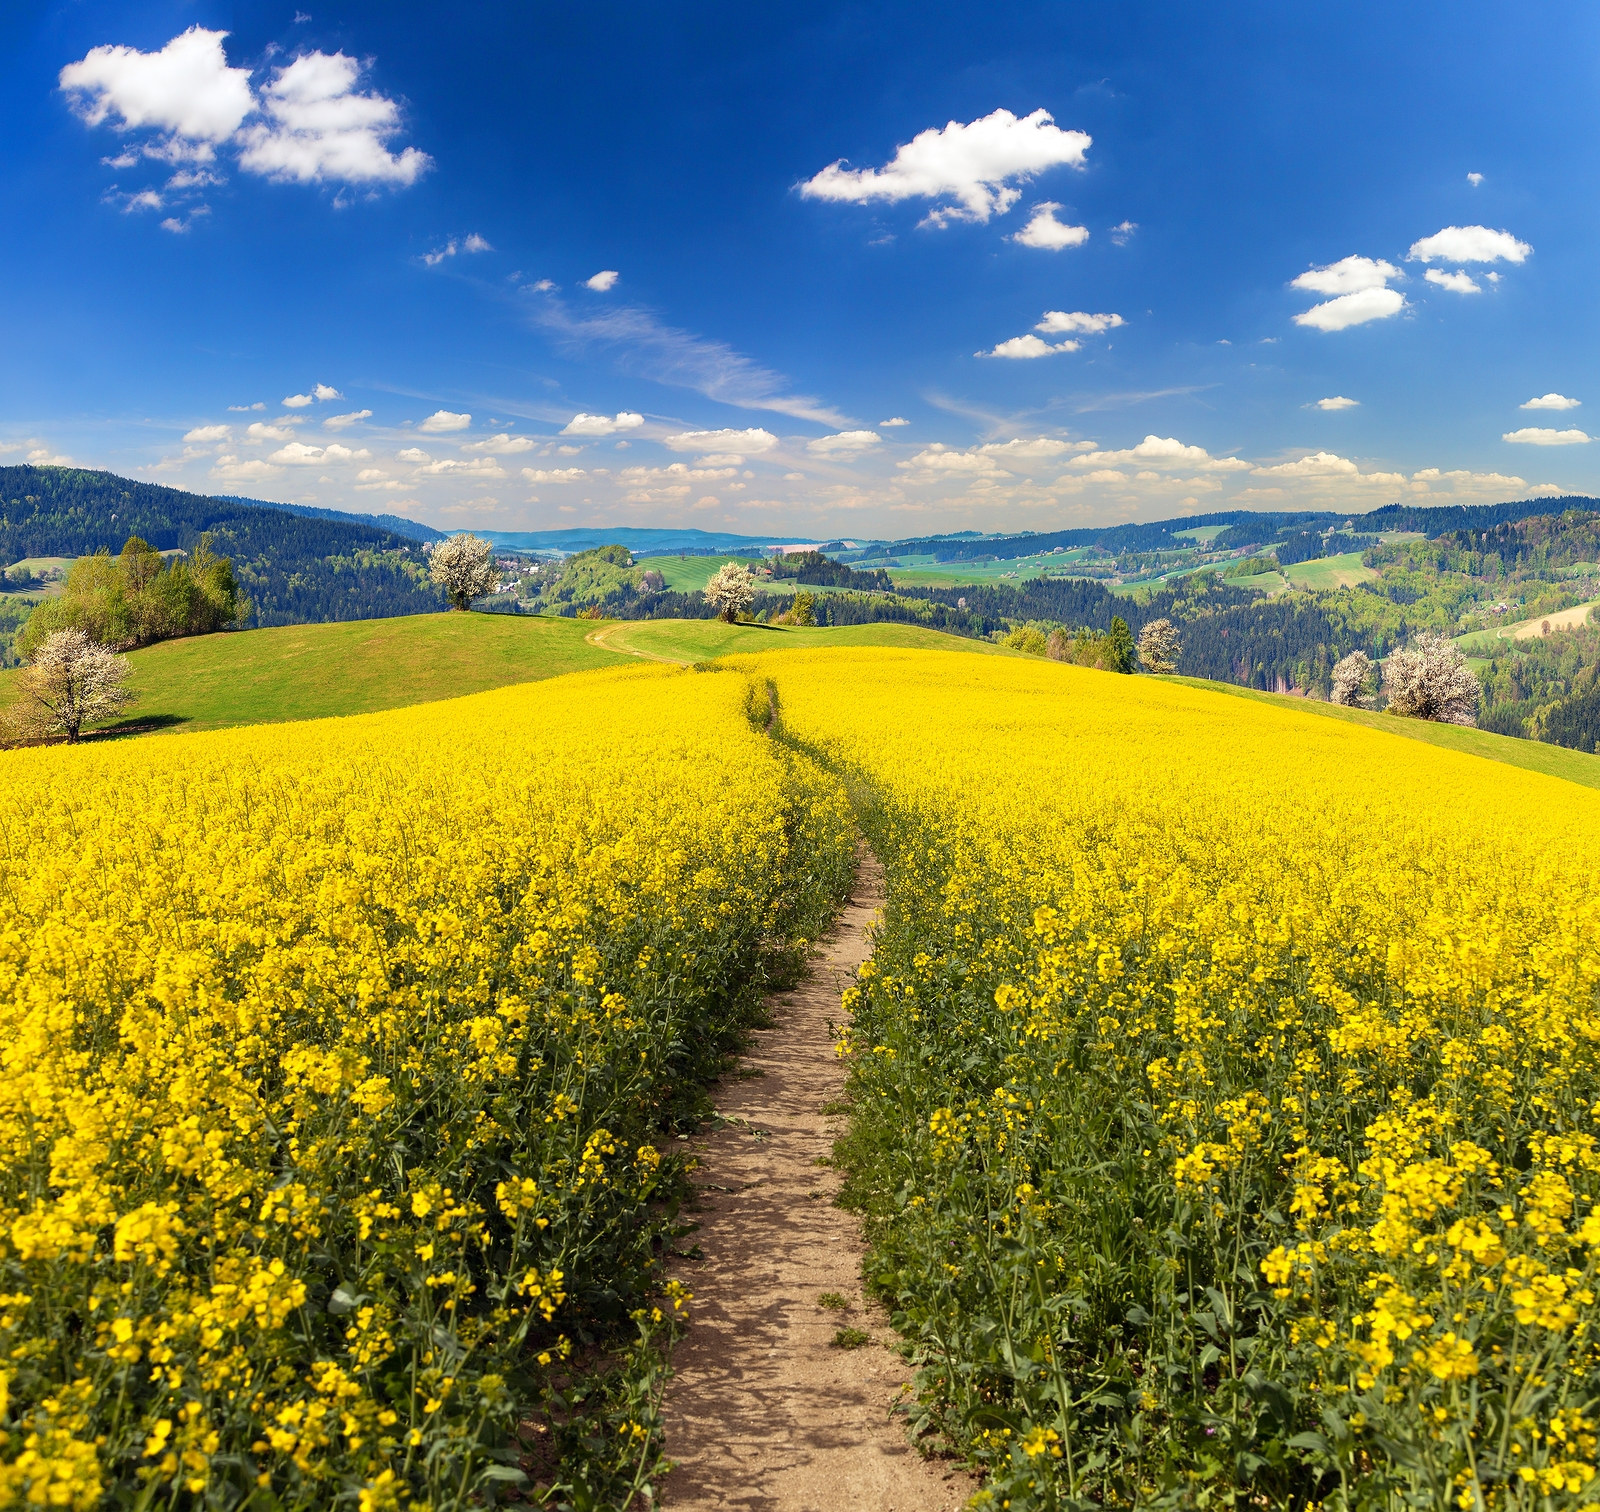 Rapeseed prices move up following coronavirus uncertainty